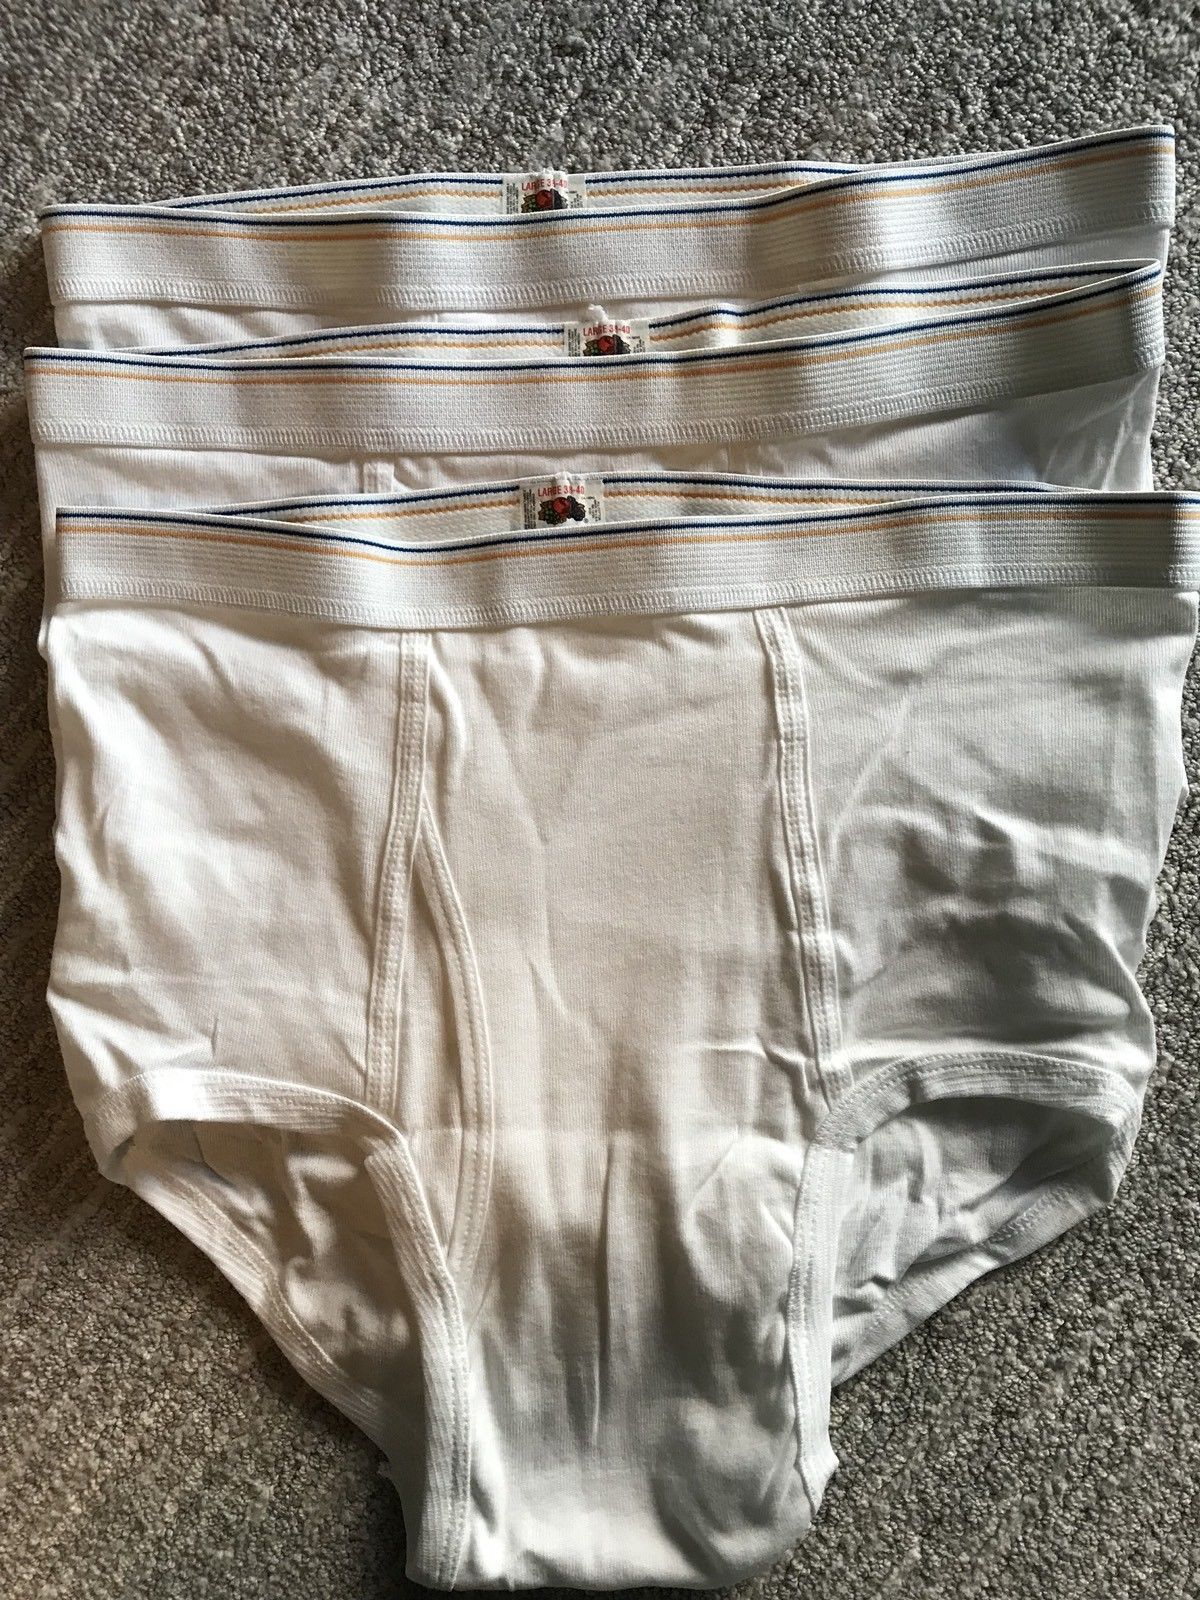 Pin on Vintage Boxers and Briefs